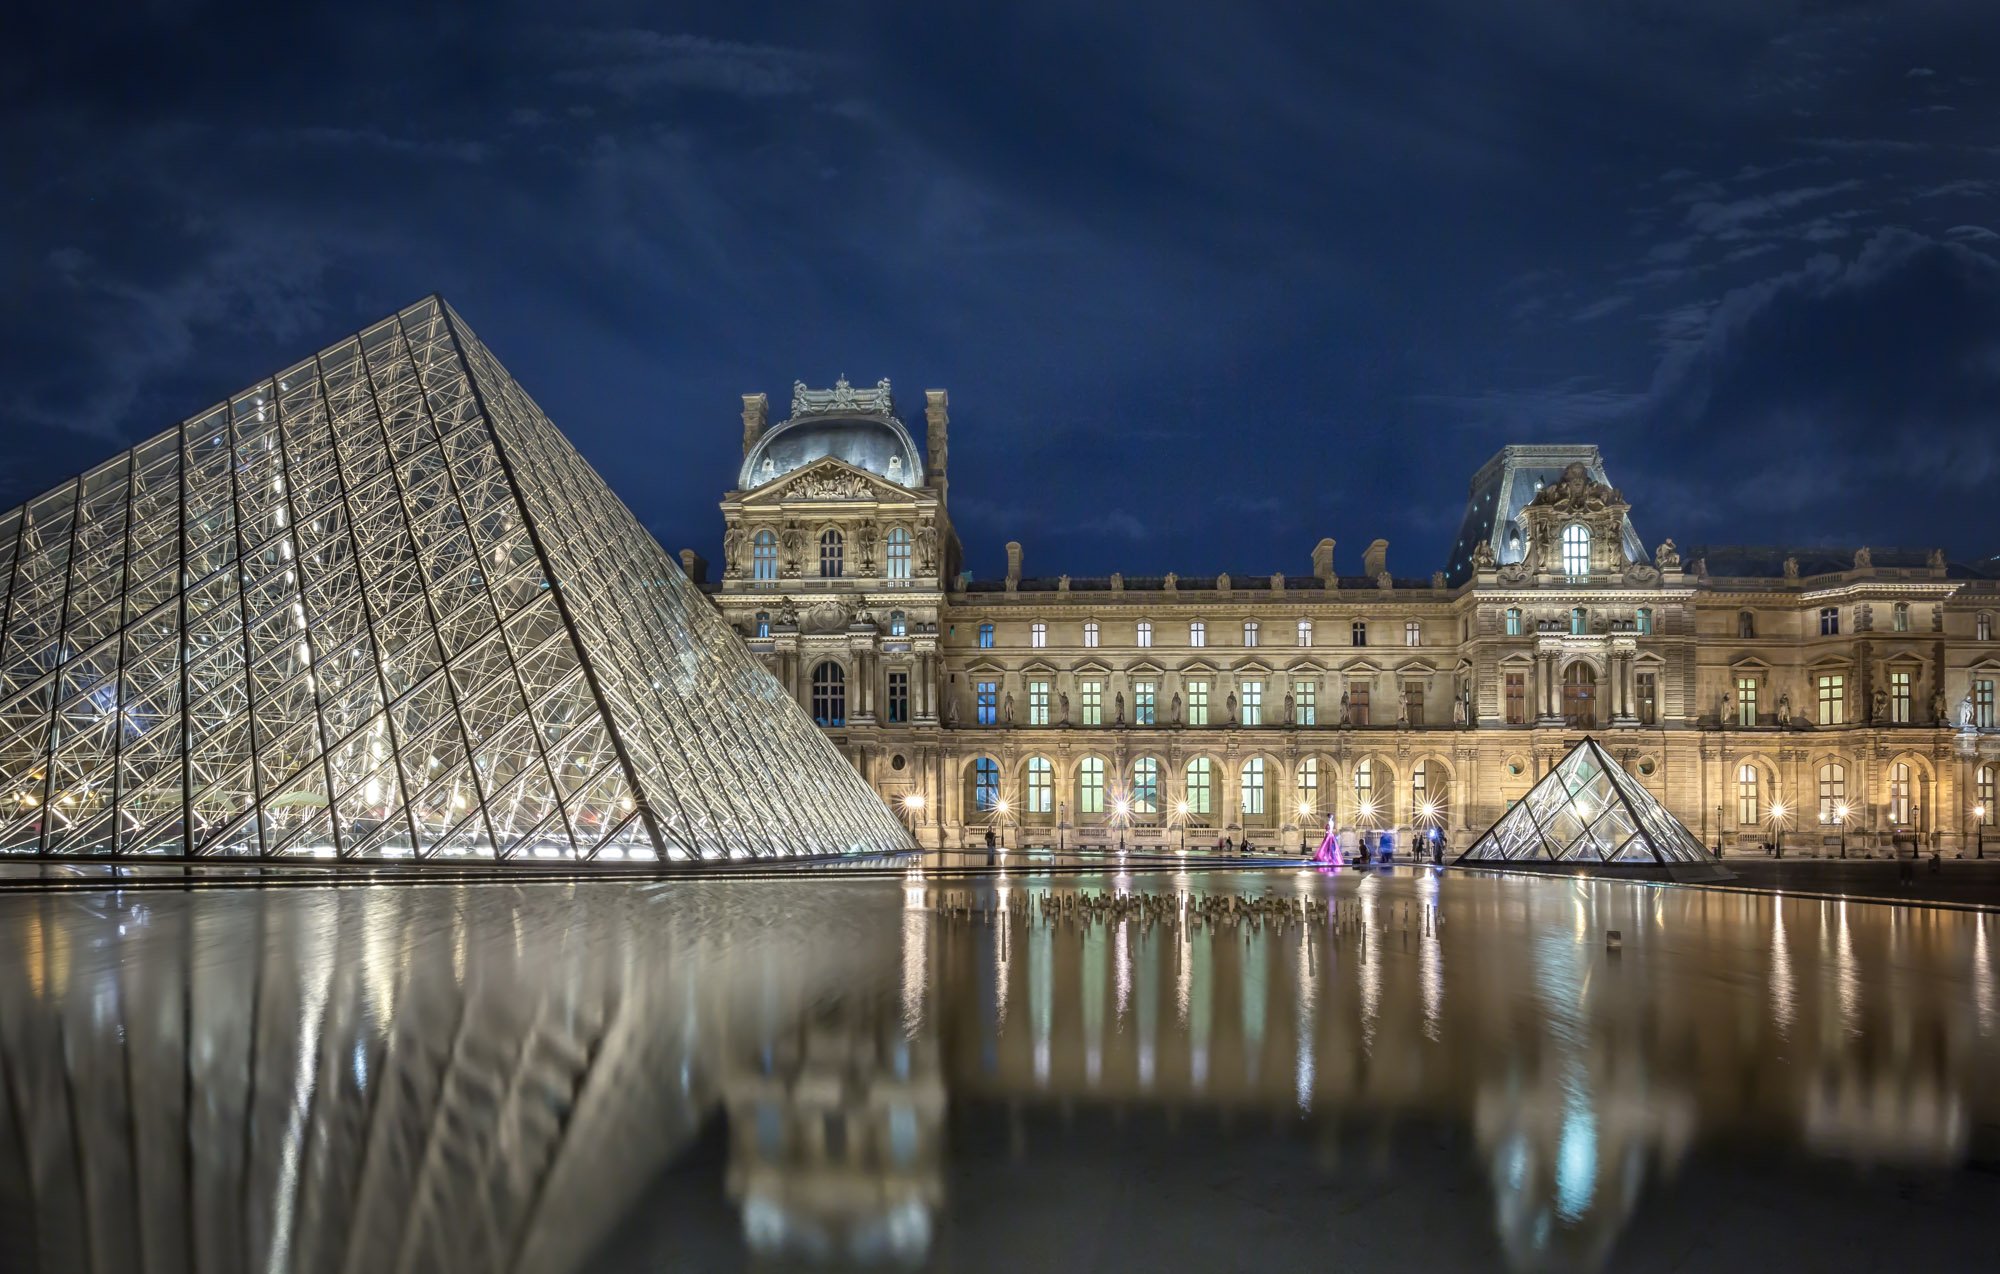 long exposure night photography of the Louvre Museum in Paris France